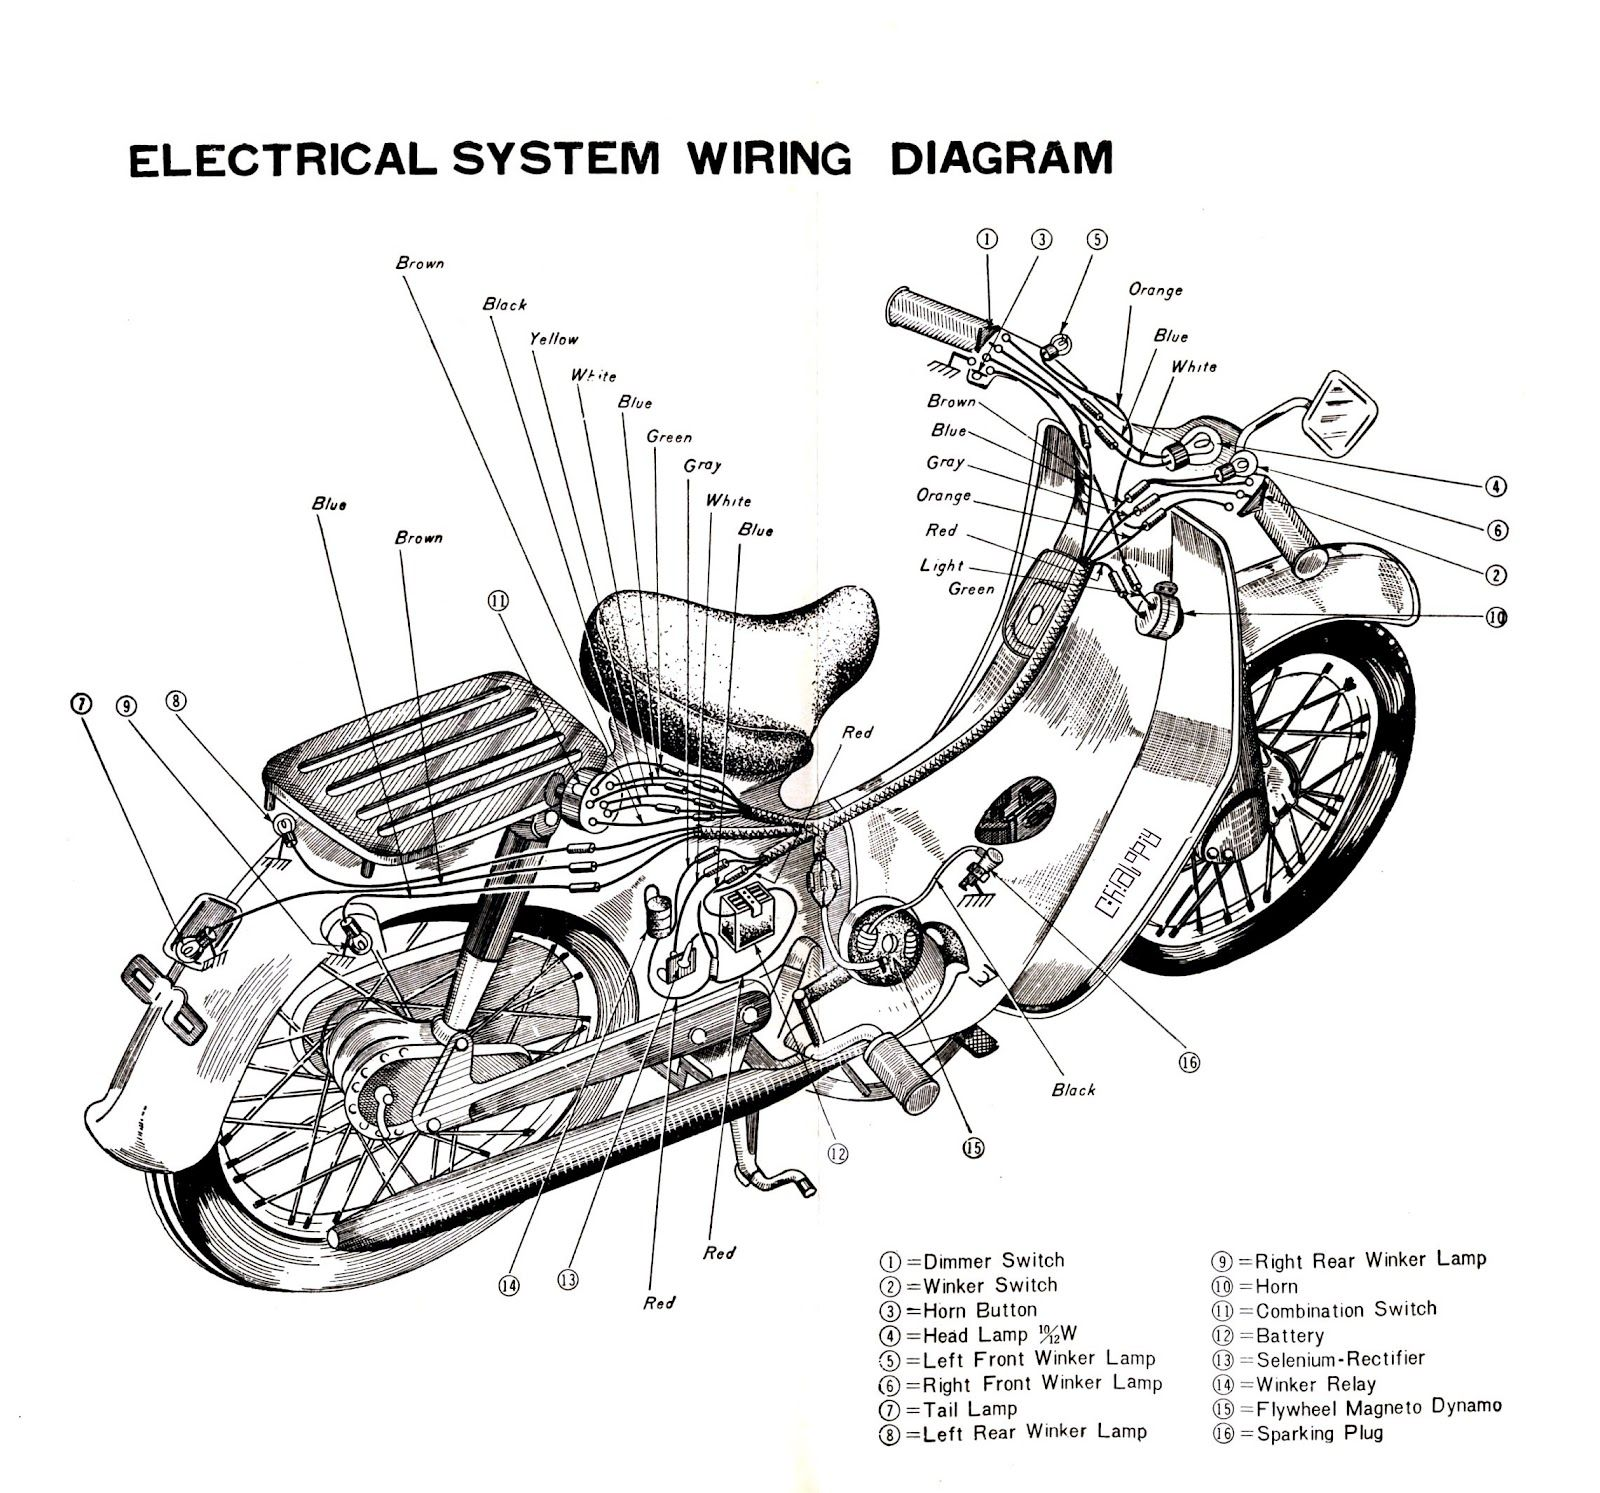 Super Club Electric Wiring Diagram Vintage Honda Motorcycles, Cool  Motorcycles, Honda Cub, Motorcycle